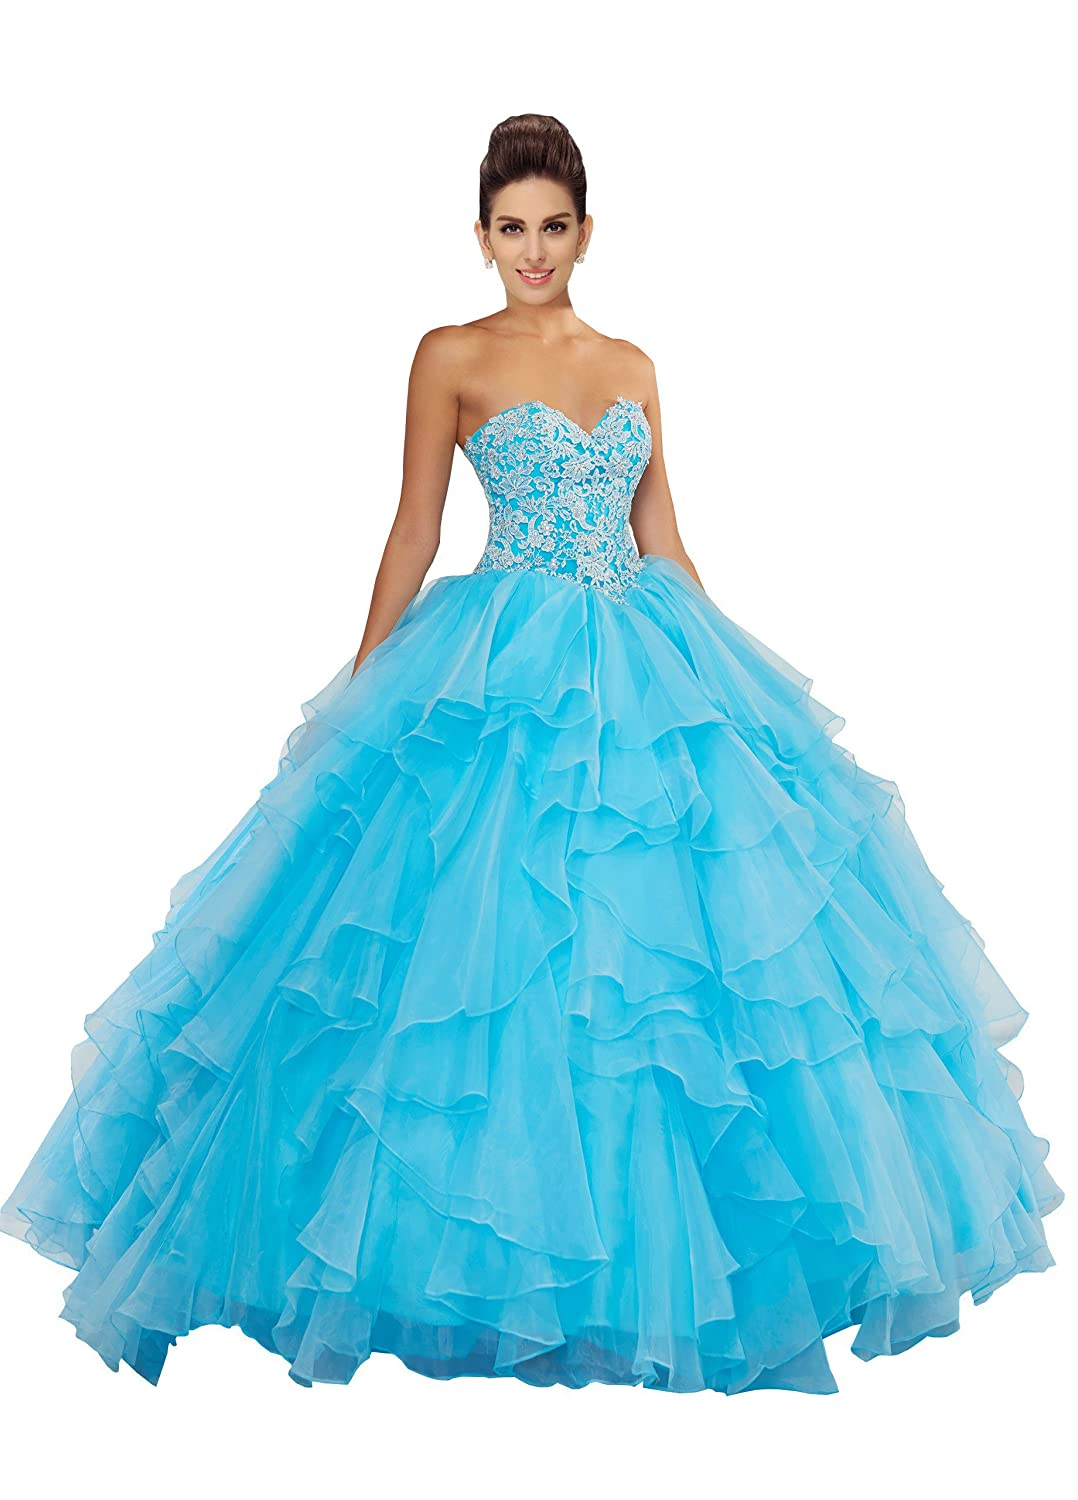 5d04d92419f Fannydress Ruffles Lace Beaded Prom Dresses 5th Grade Strapless Lace-up Organza  Quinceanera Dress 2019 at Amazon Women s Clothing store